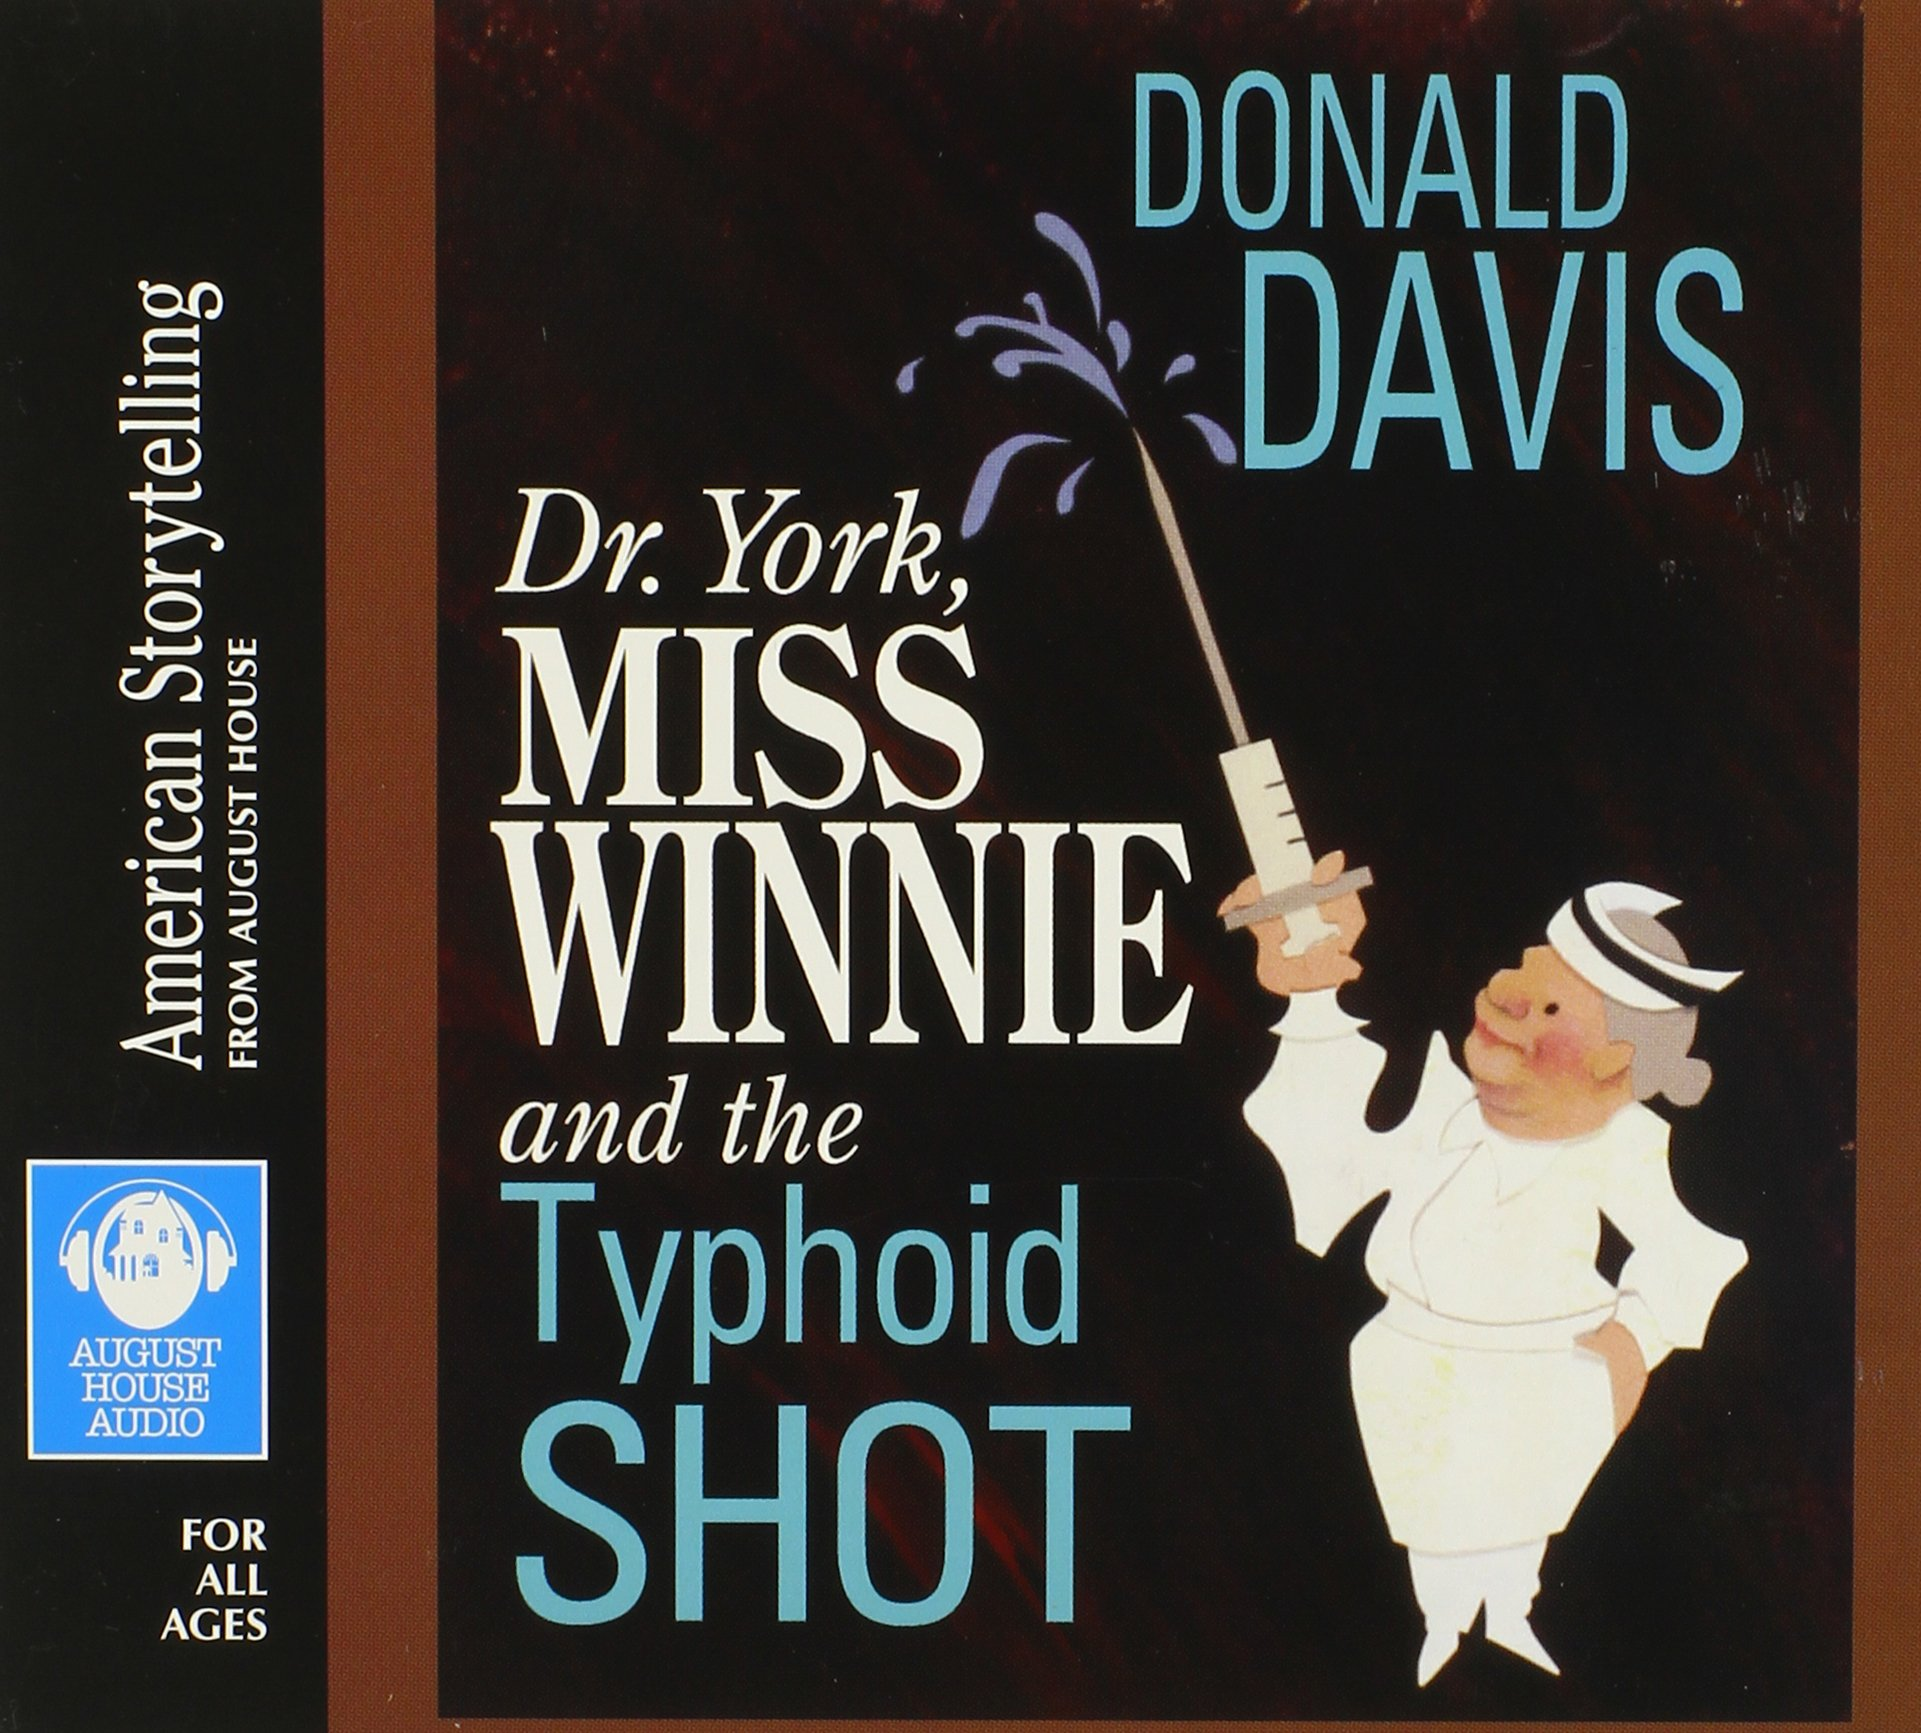 Dr. York, Miss Winnie, and the Typhoid Shot (American Storytelling (Audio))